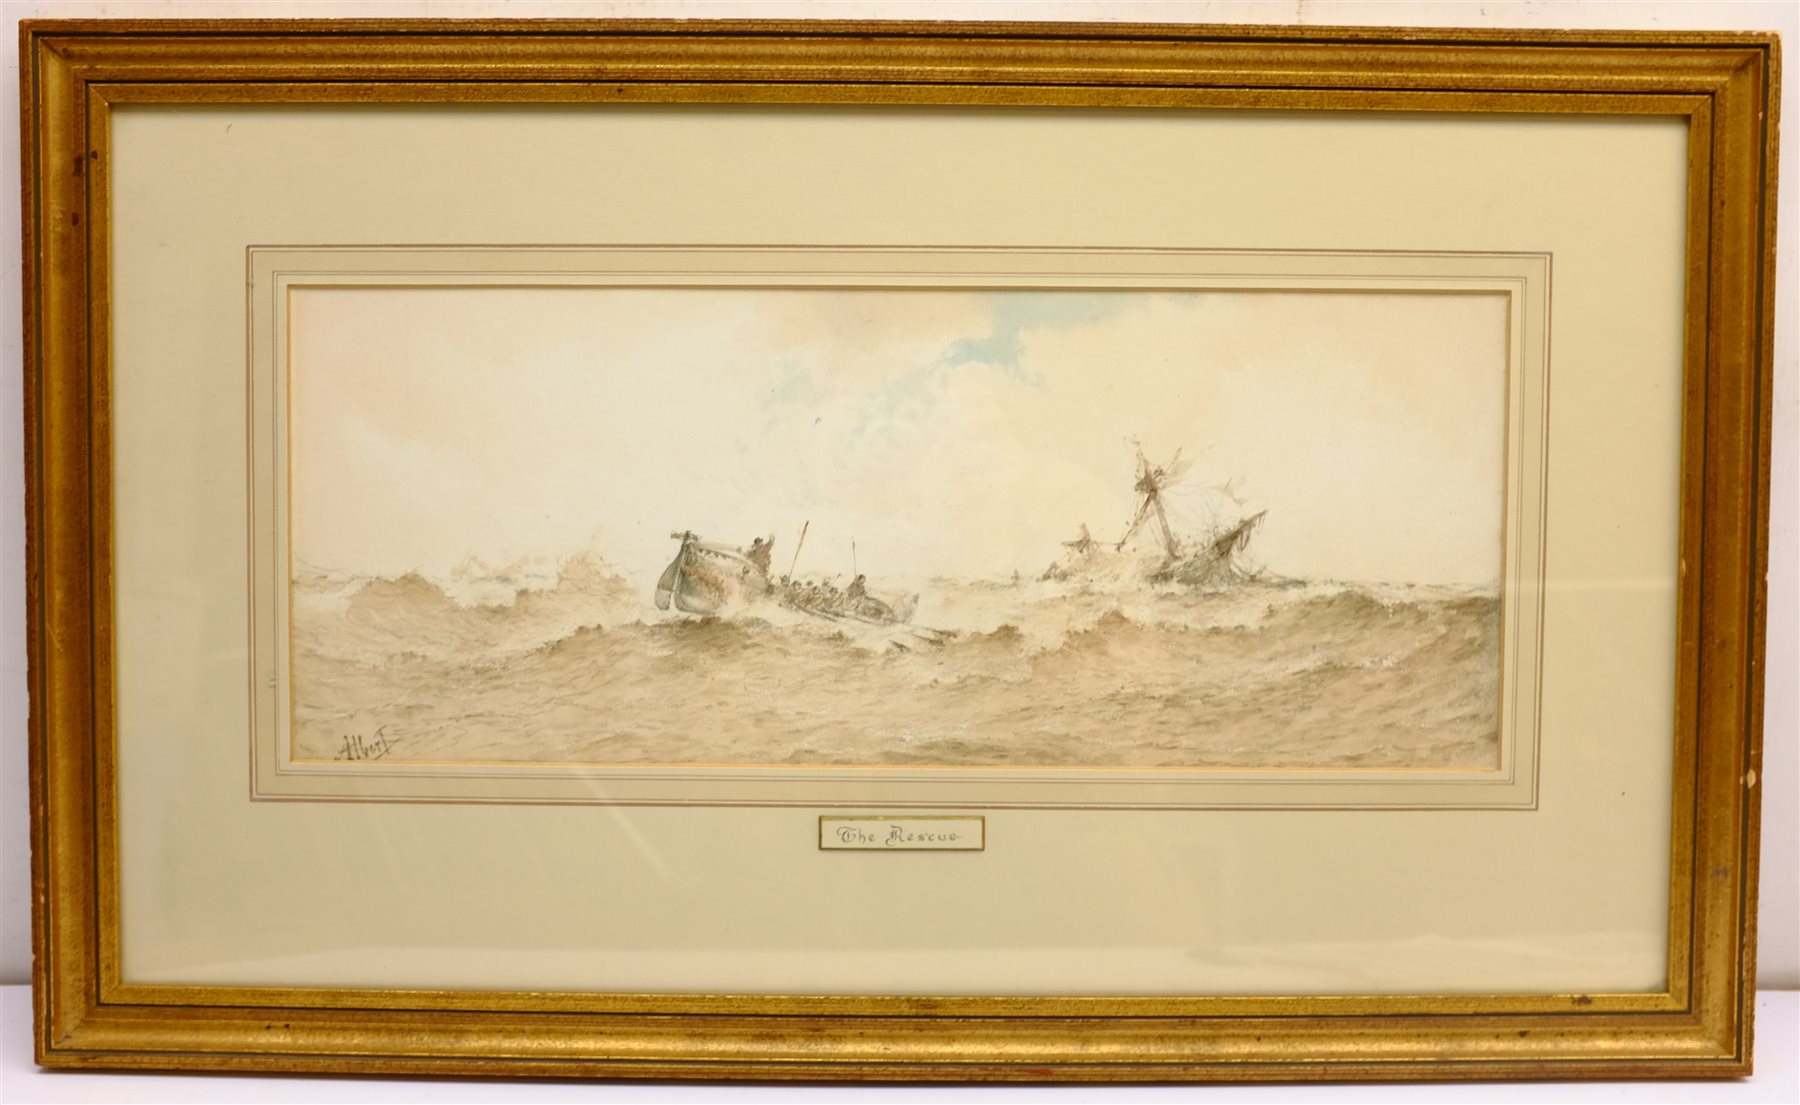 Albert Ernest Markes (British 1865-1901): 'The Rescue', watercolour signed, titled on the mount 20cm - Image 3 of 4